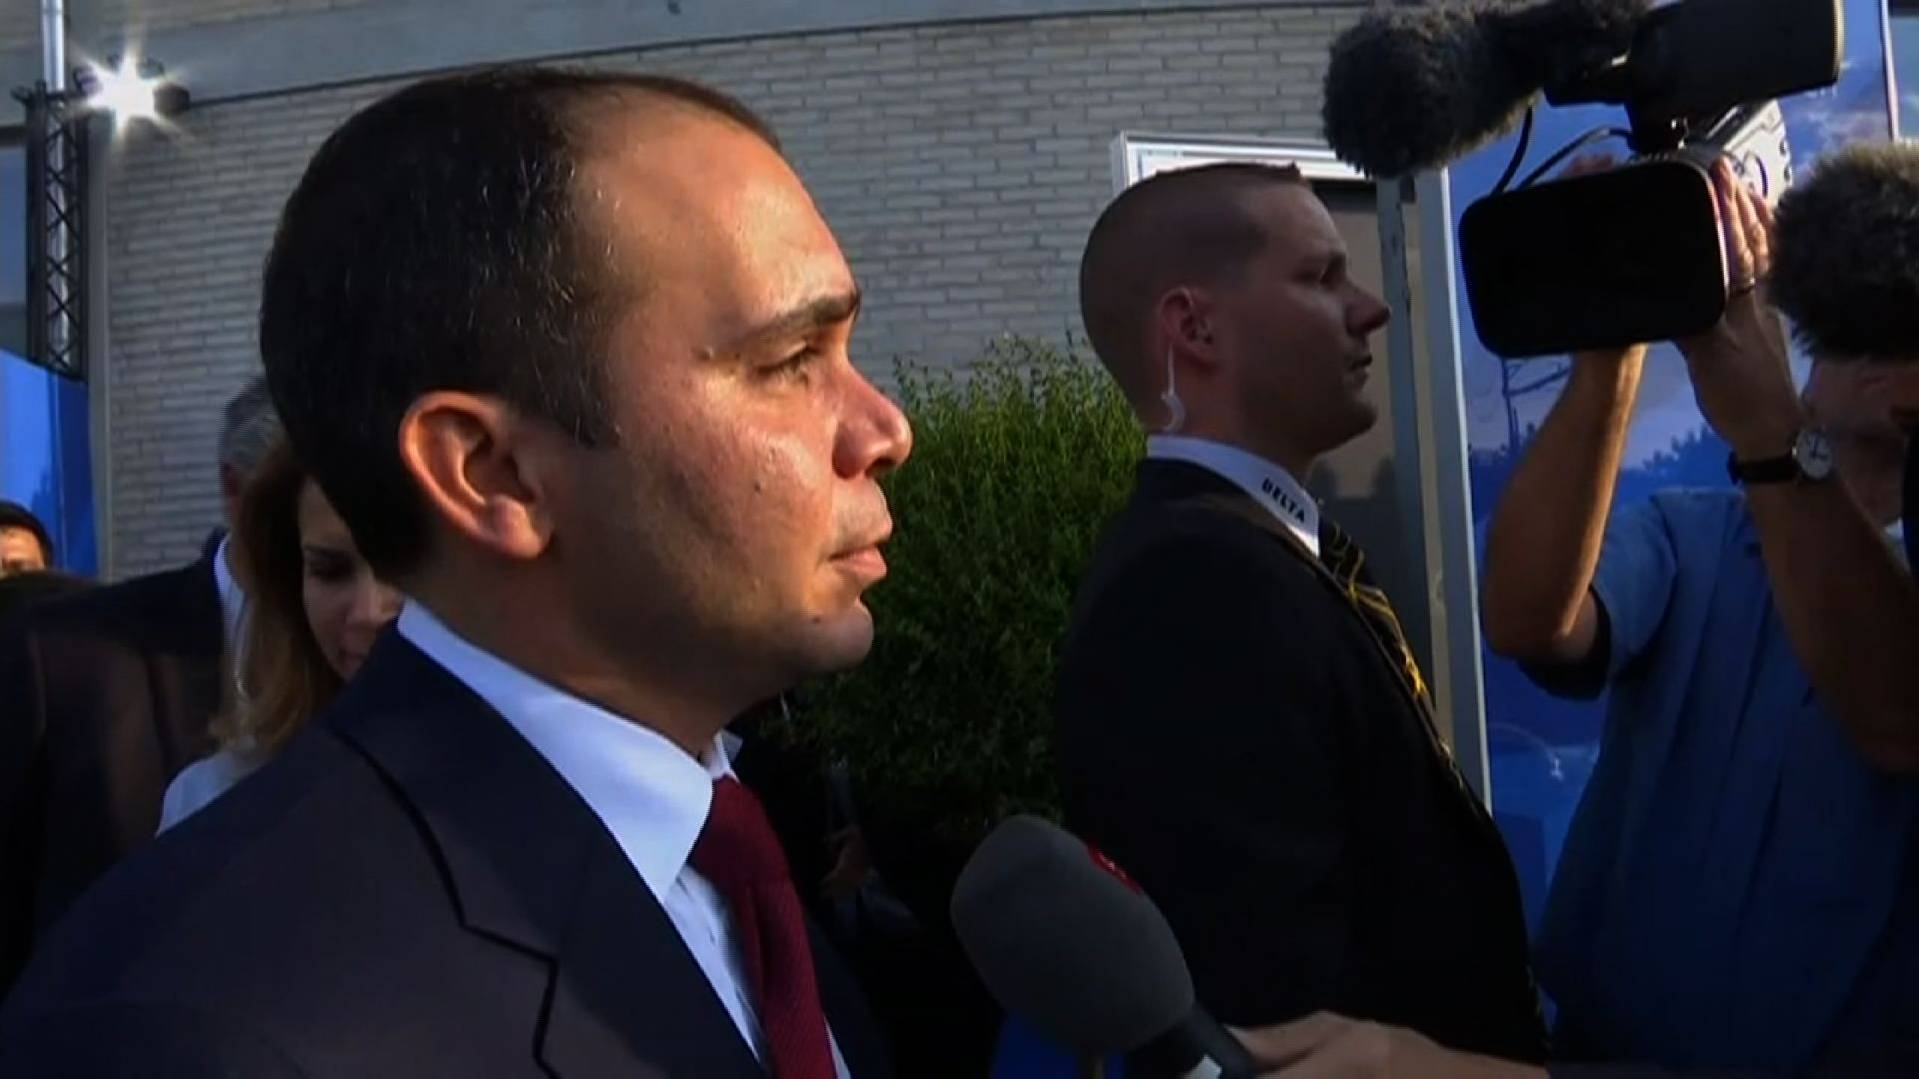 Prince Ali withdraws from FIFA leadership race